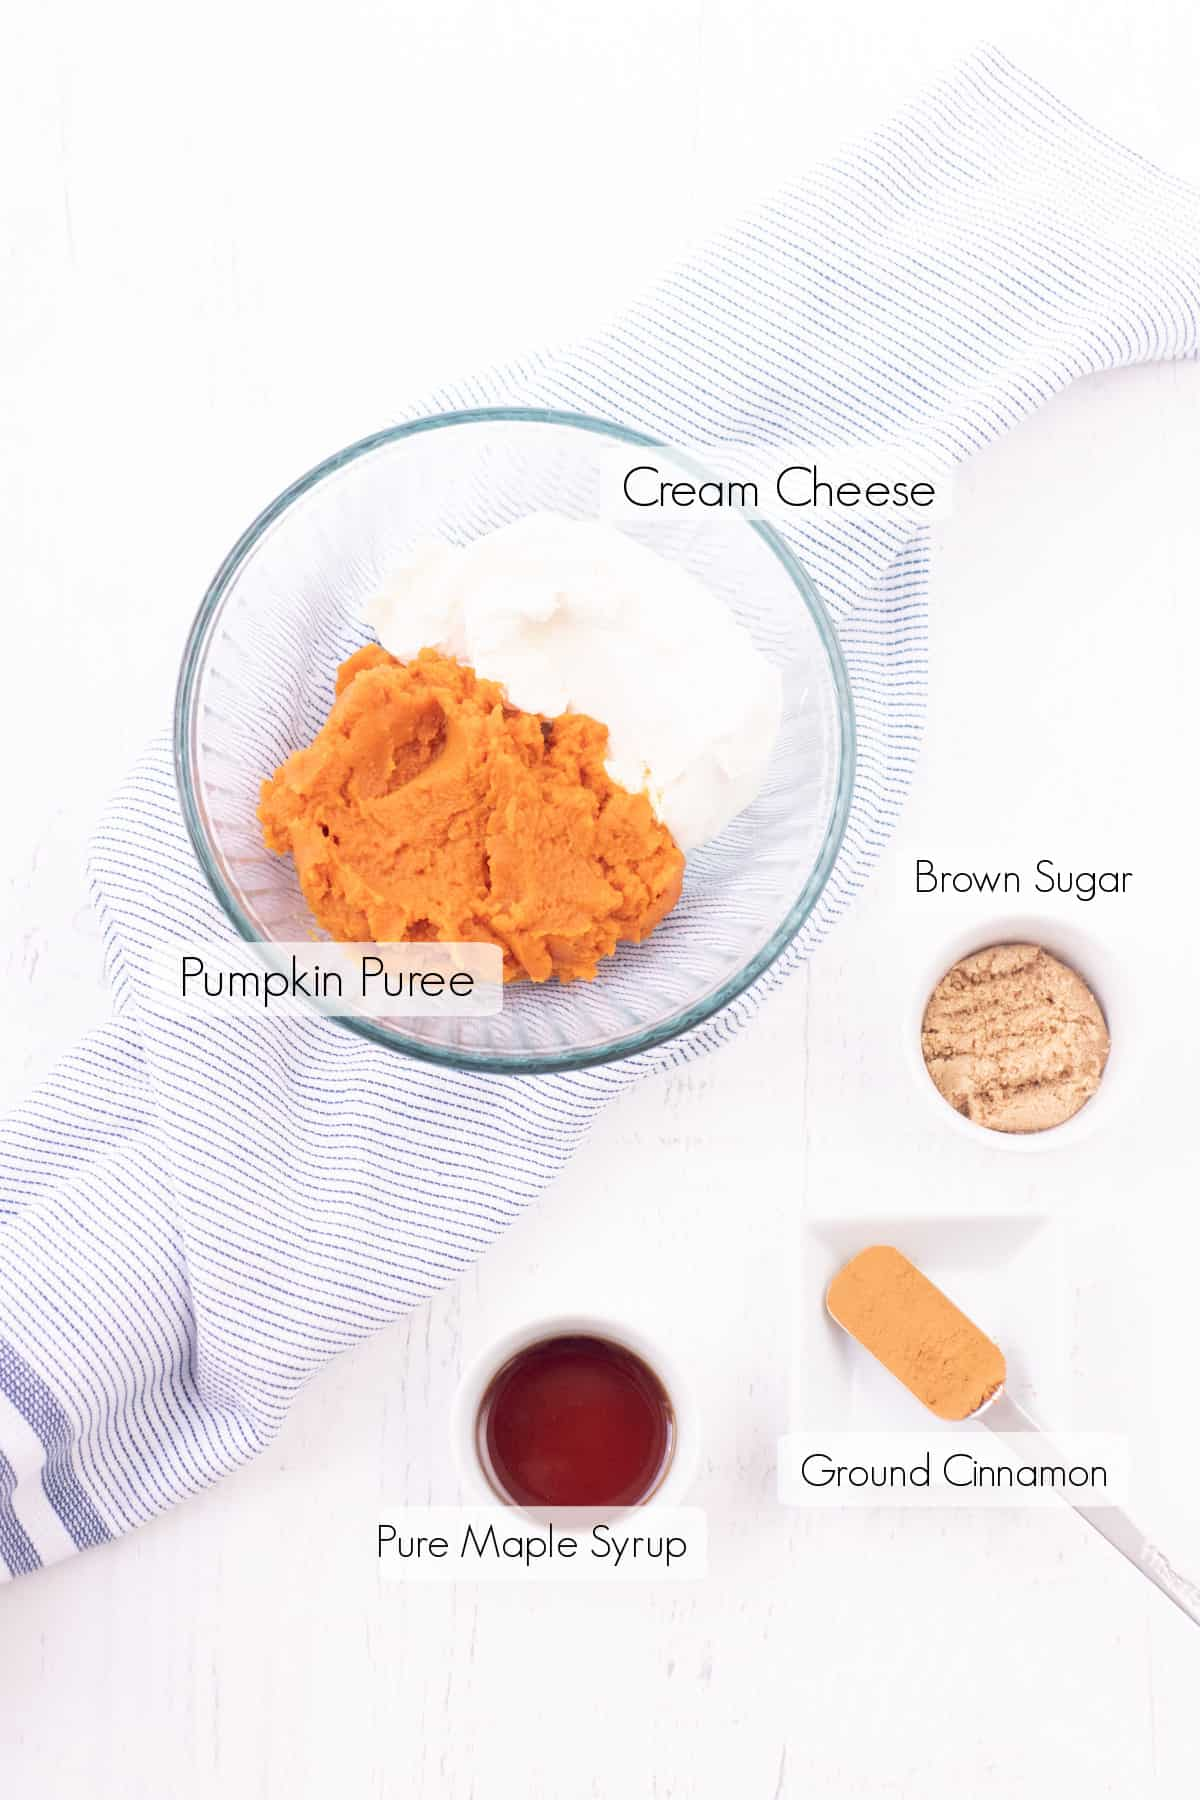 Labeled ingredients to make pumpkin cheesecake dip.